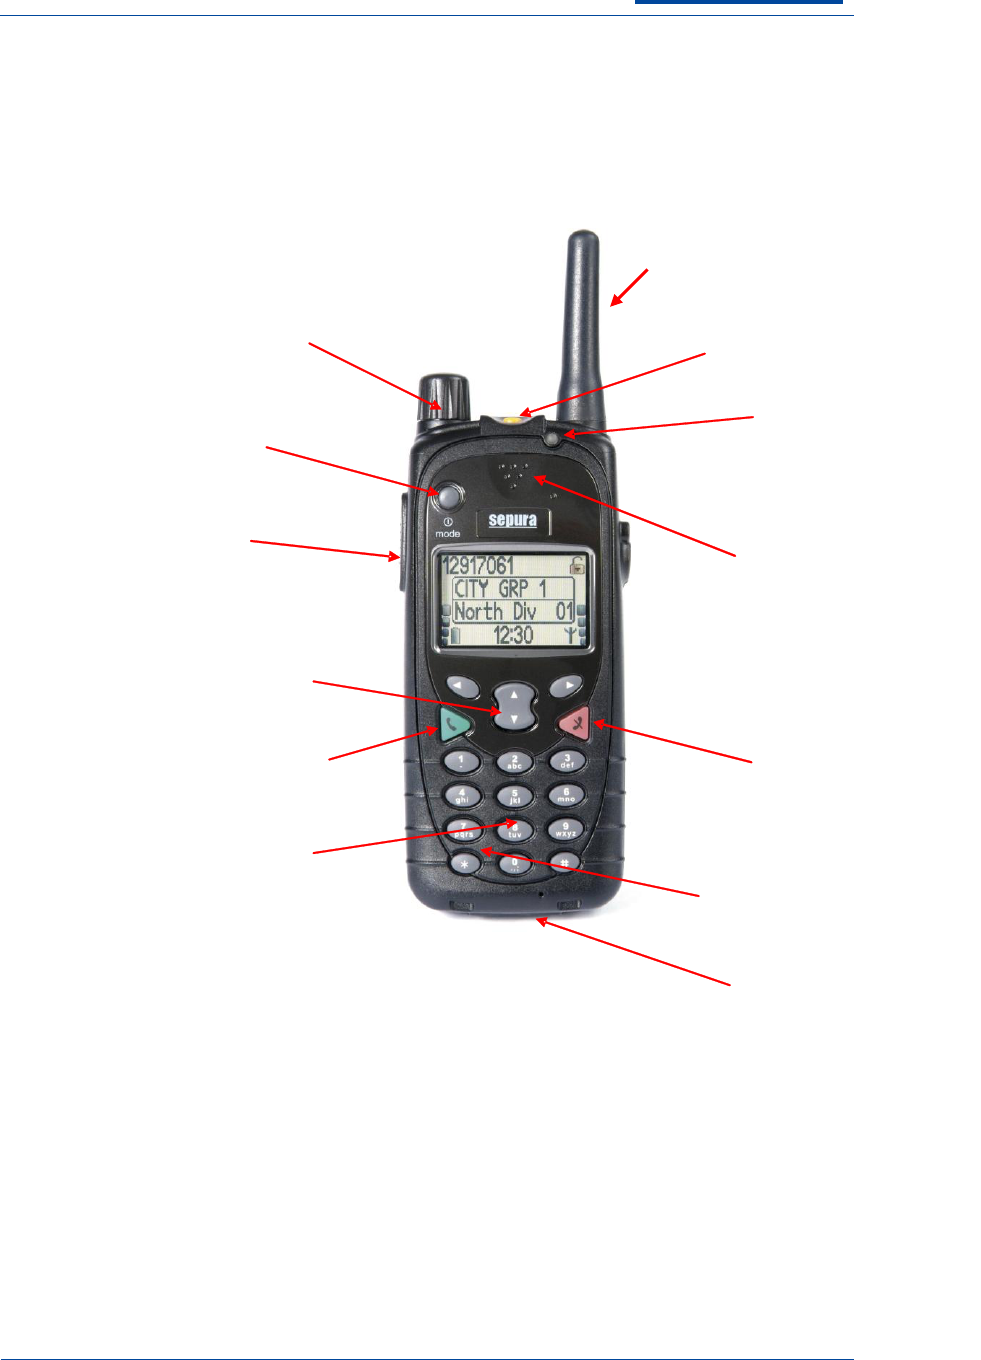 Sepura plc STP8280 Portable TETRA Radio User Manual TETRA